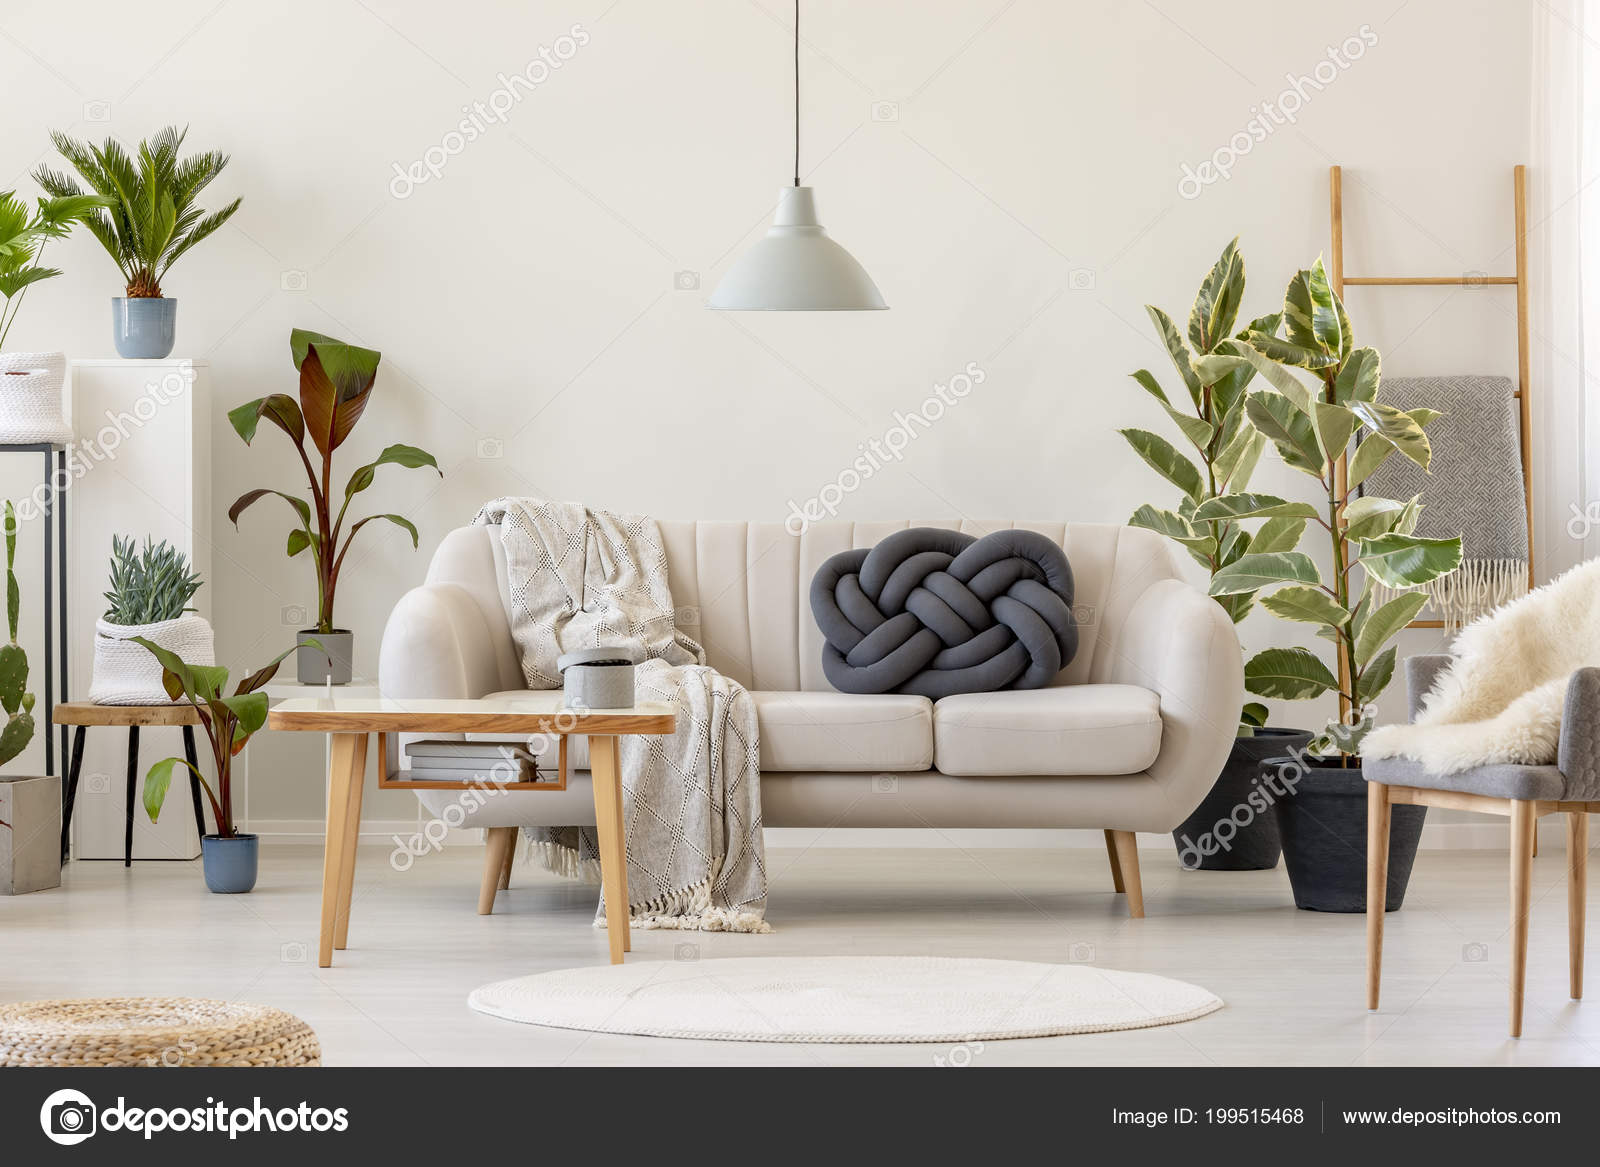 wooden table front beige sofa floral living room interior plants rh depositphotos com coffee table in front of reclining sofa there is a table in front of the sofa